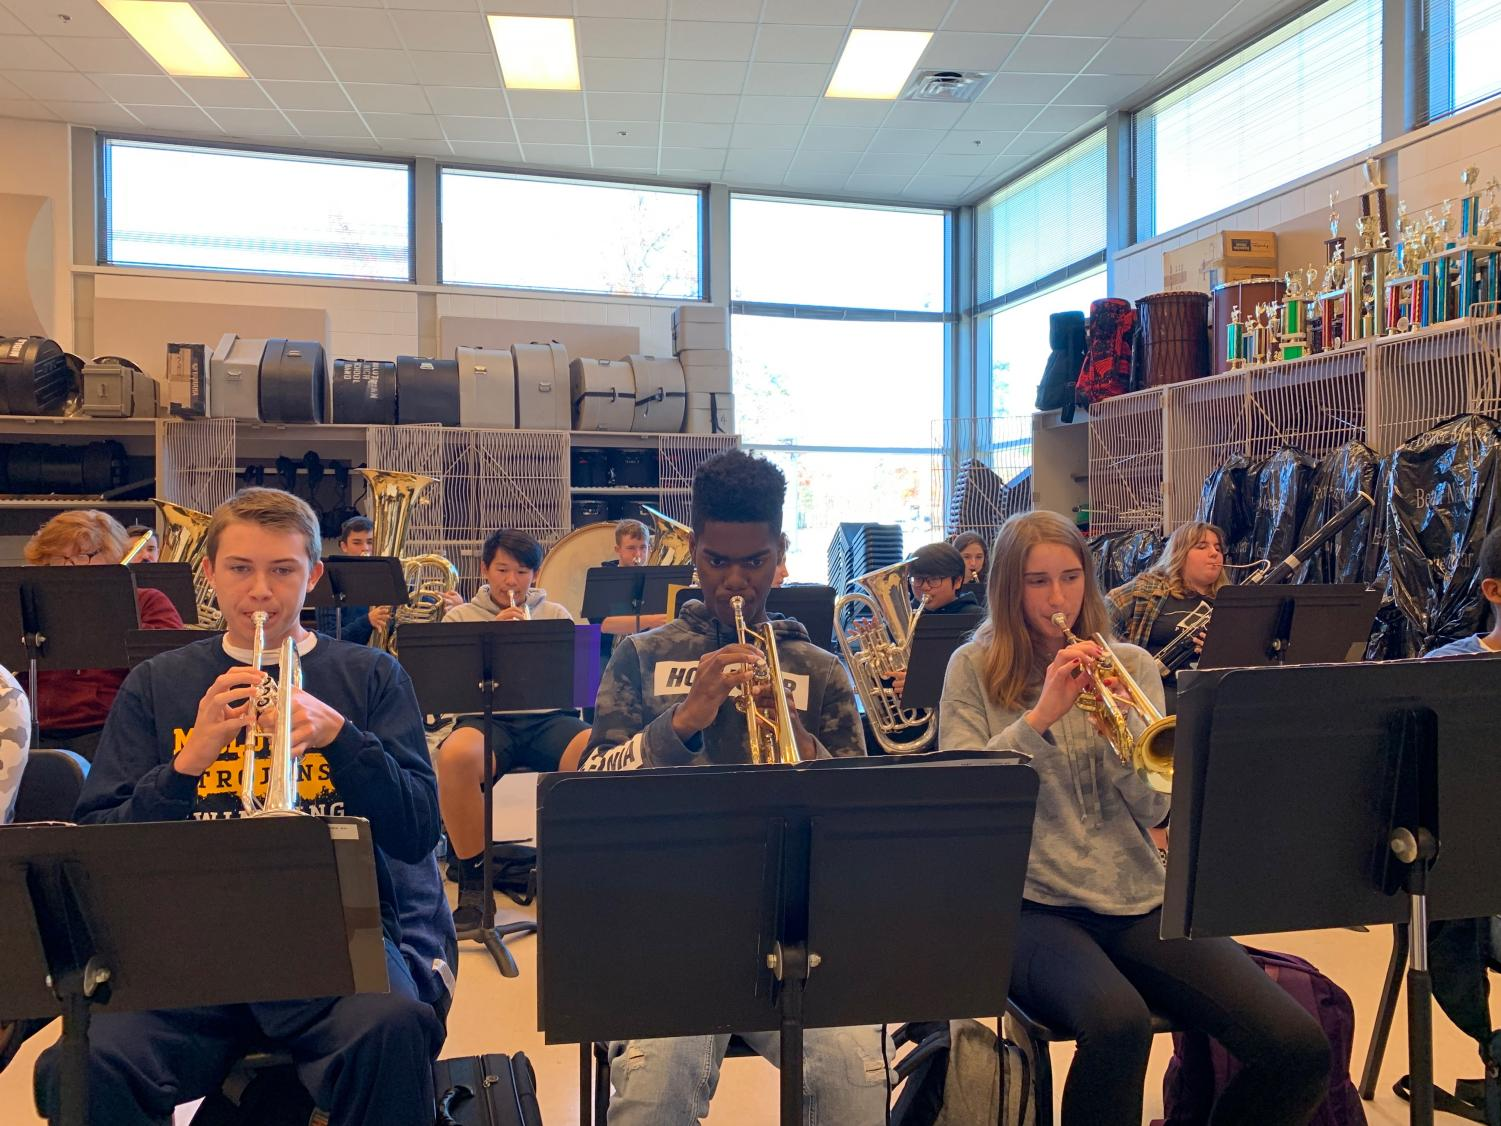 Midlothian band members practice their challenging new music.